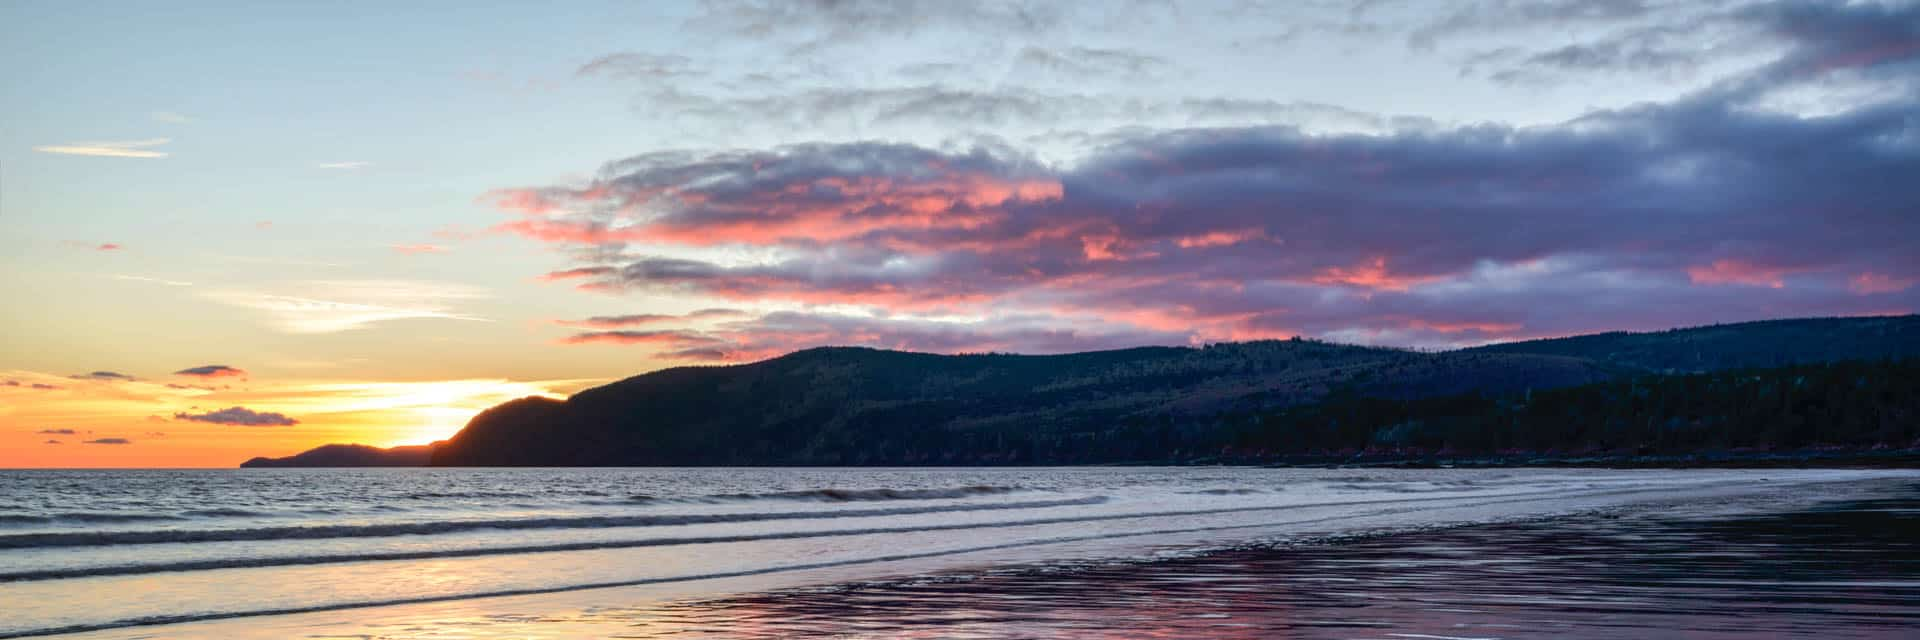 Dennis Beach, Baie de Fundy -1078